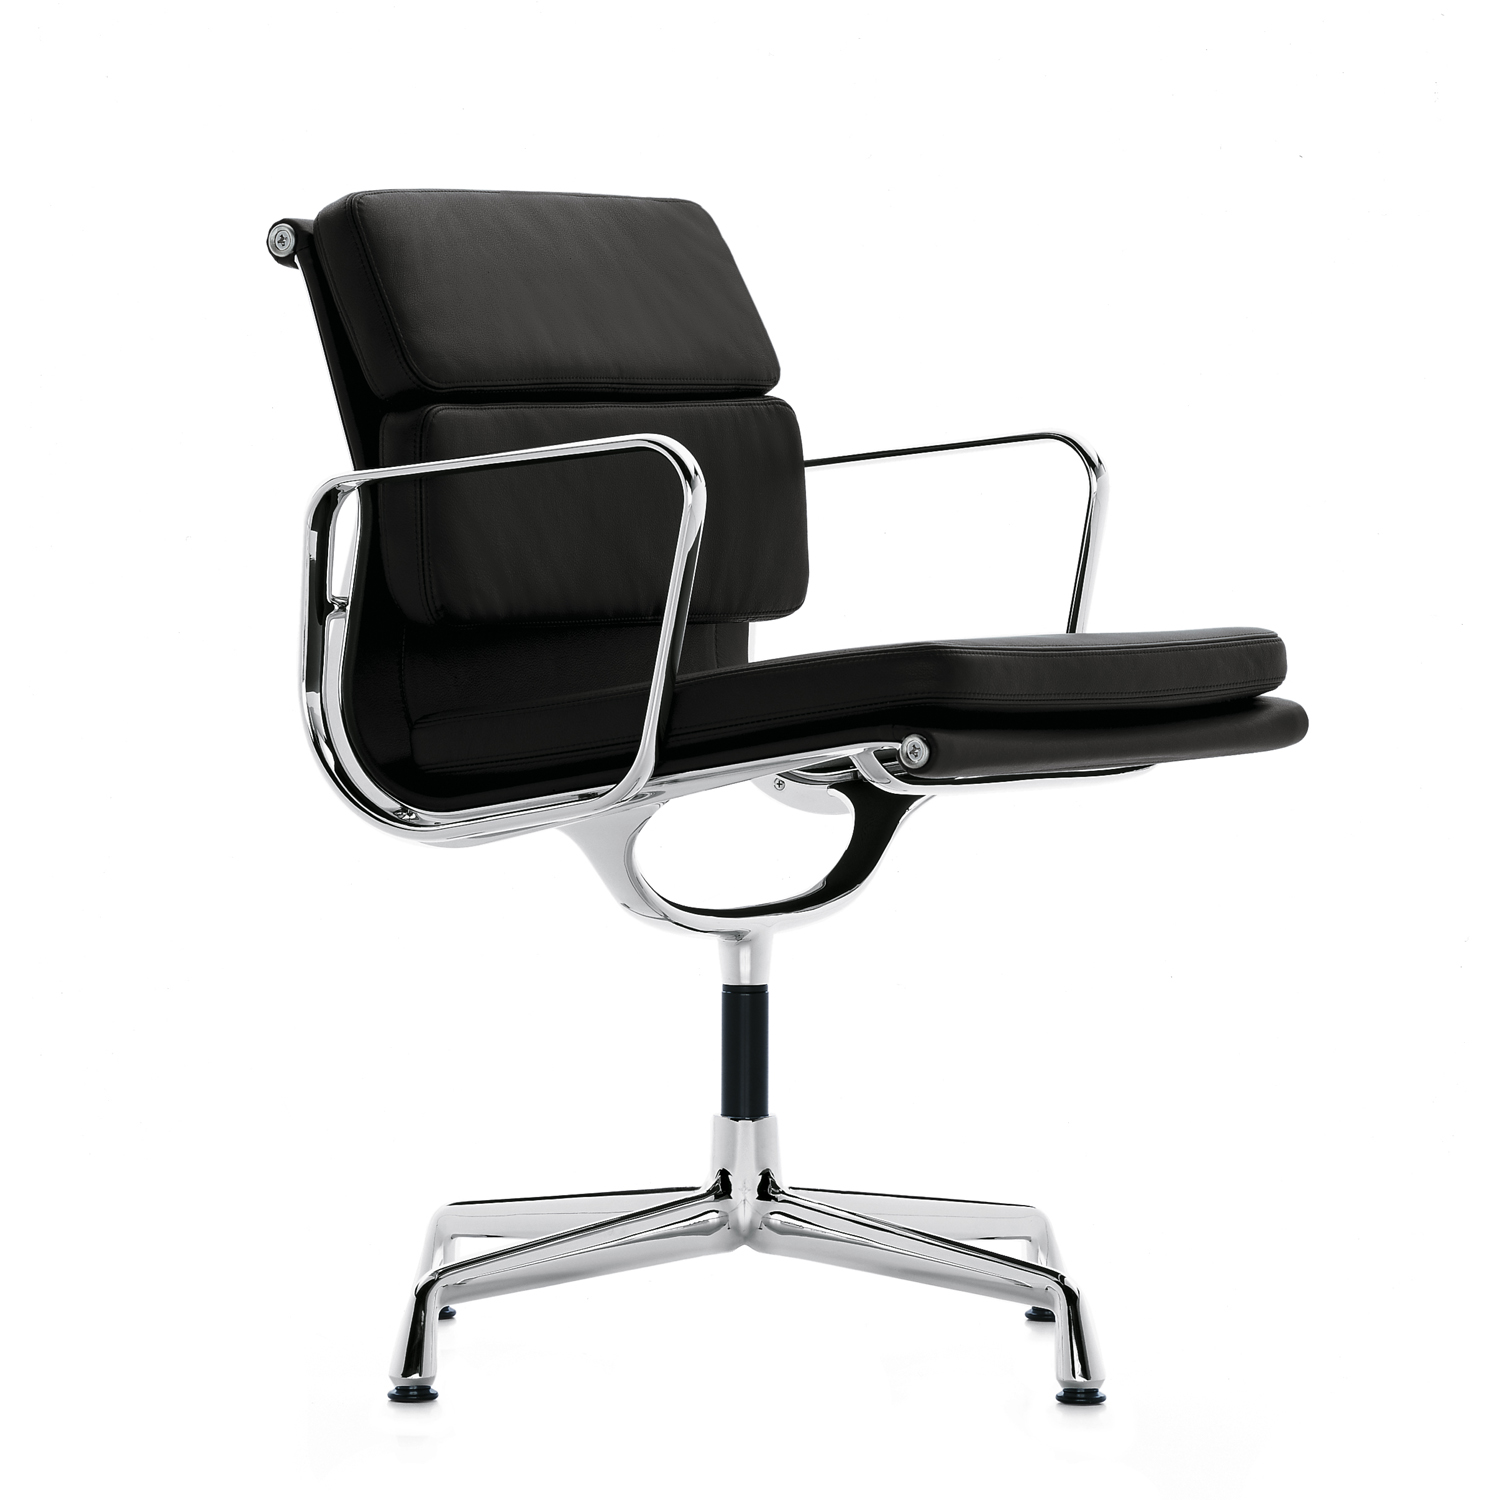 ergonomic chair là gì task chairs with arms think furniture december 2010